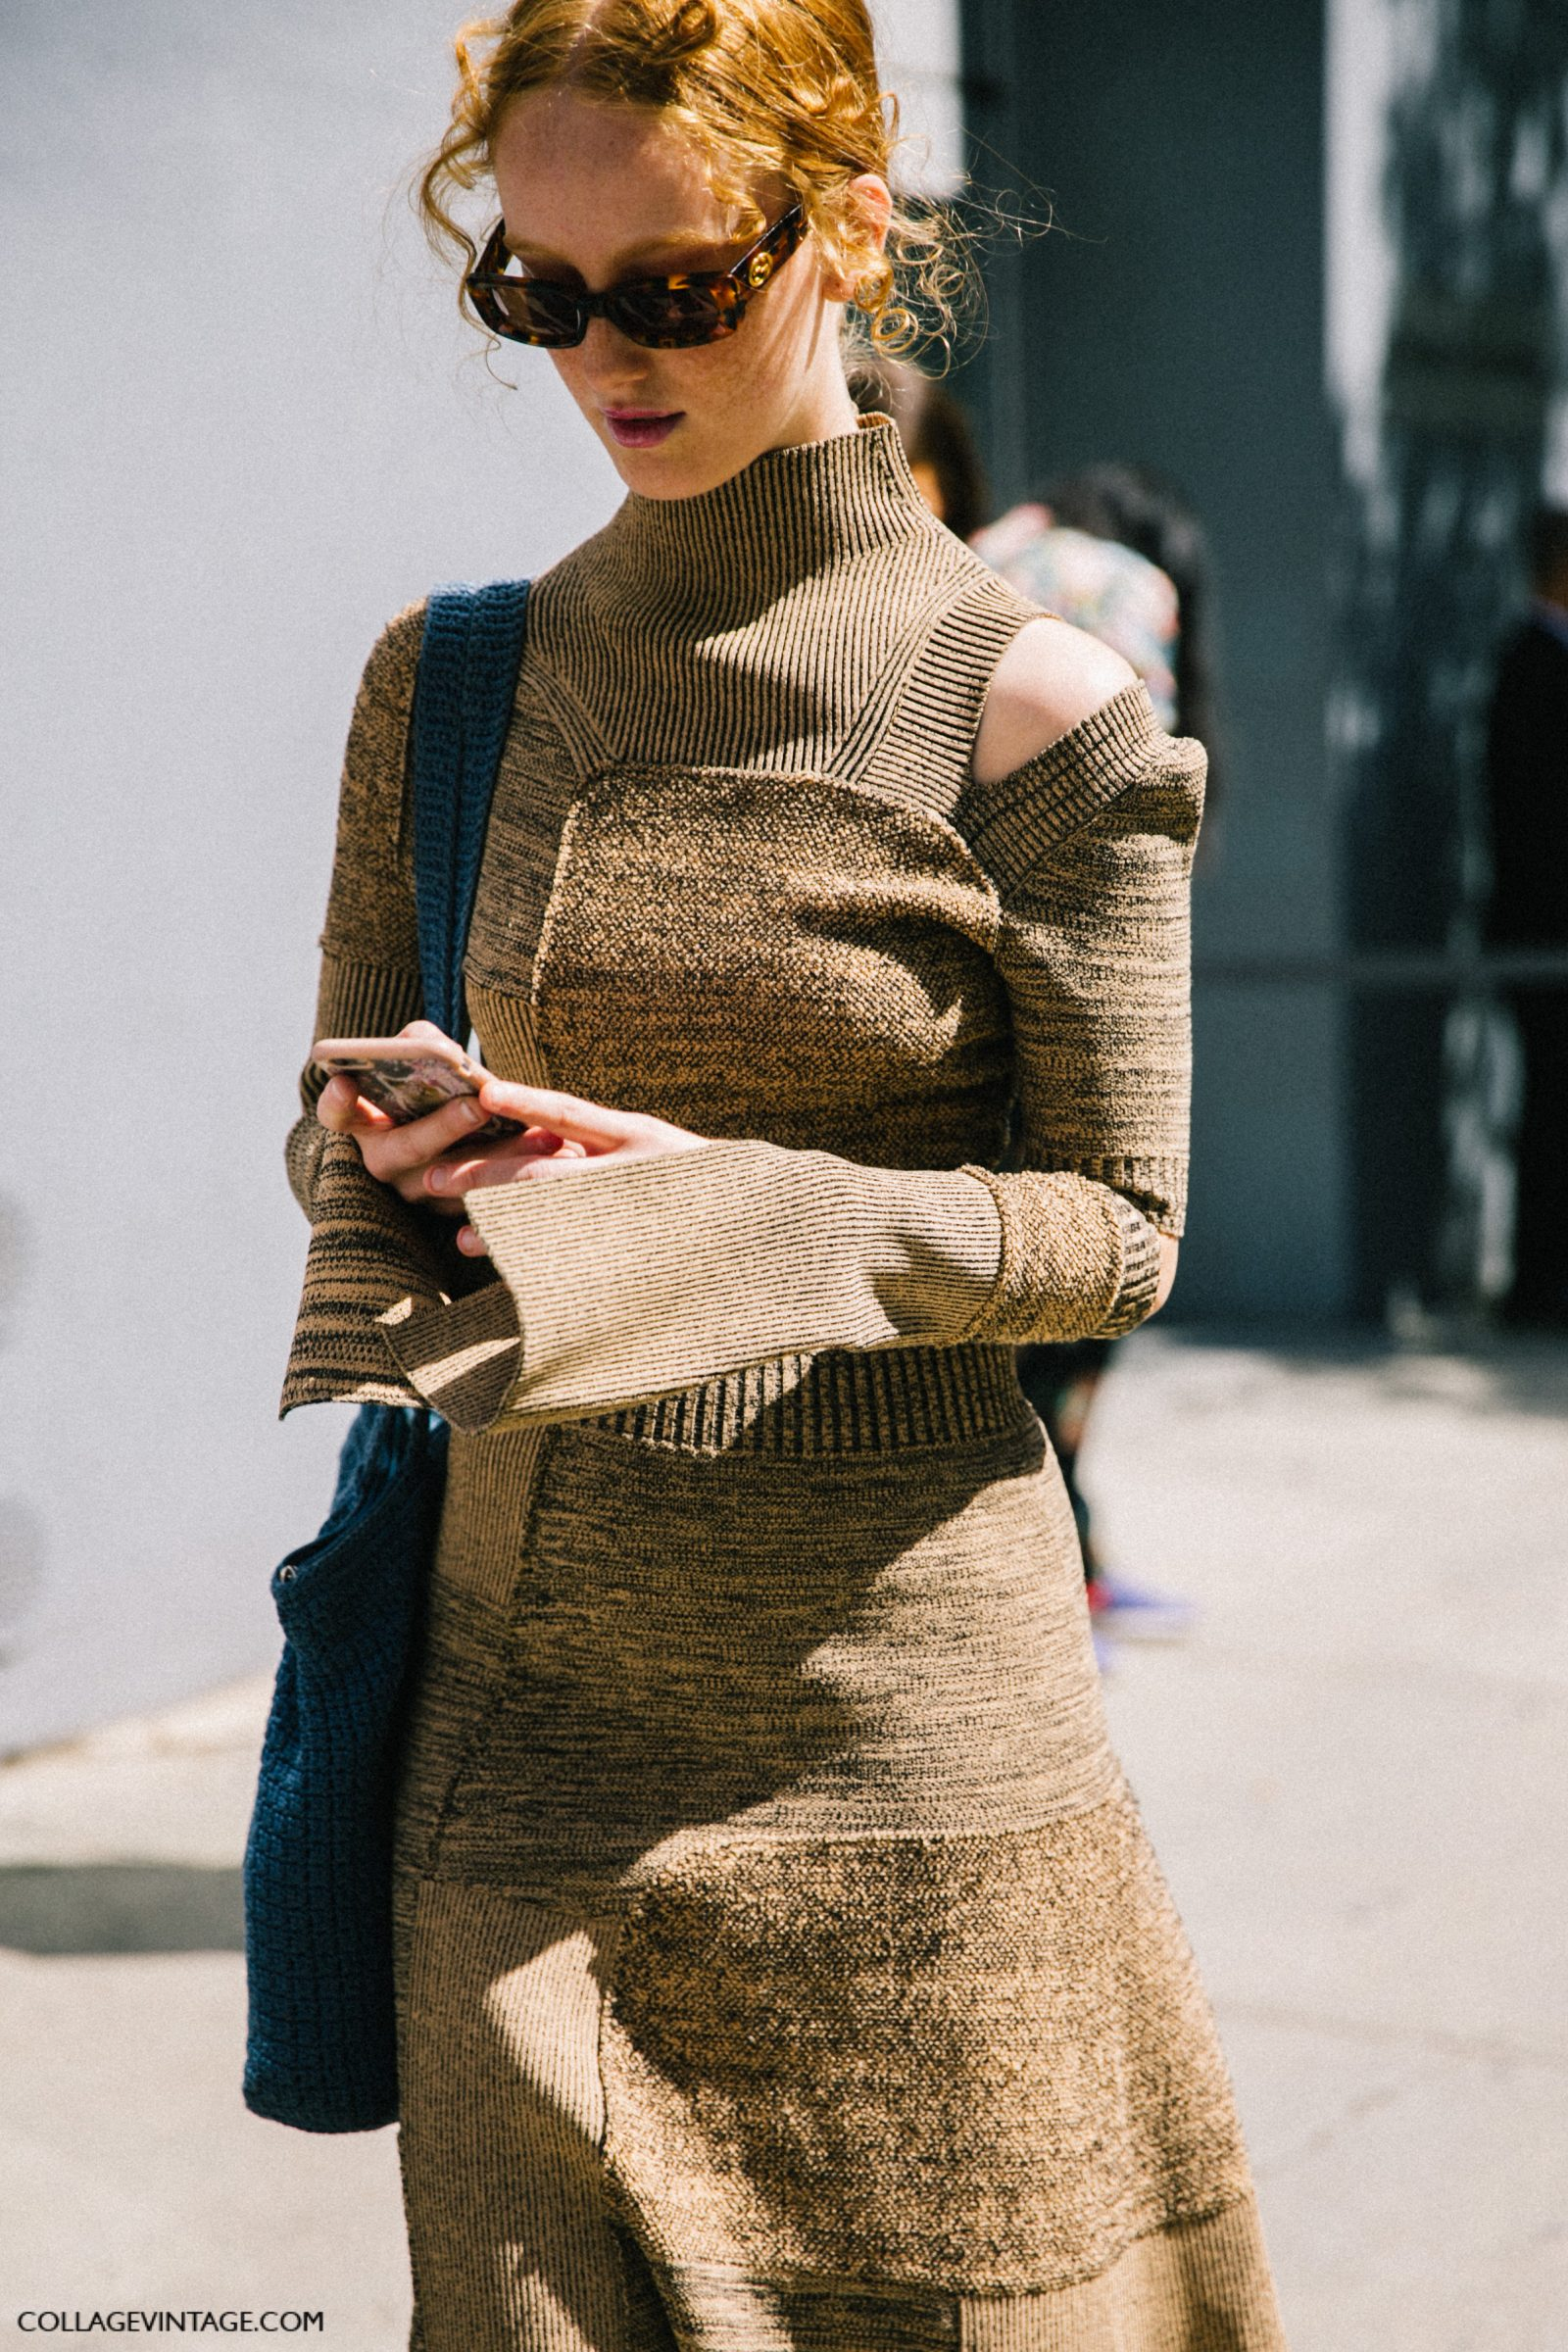 nyfw-new_york_fashion_week_ss17-street_style-outfits-collage_vintage-vintage-phillip_lim-the-row-proenza_schouler-rossie_aussolin-229